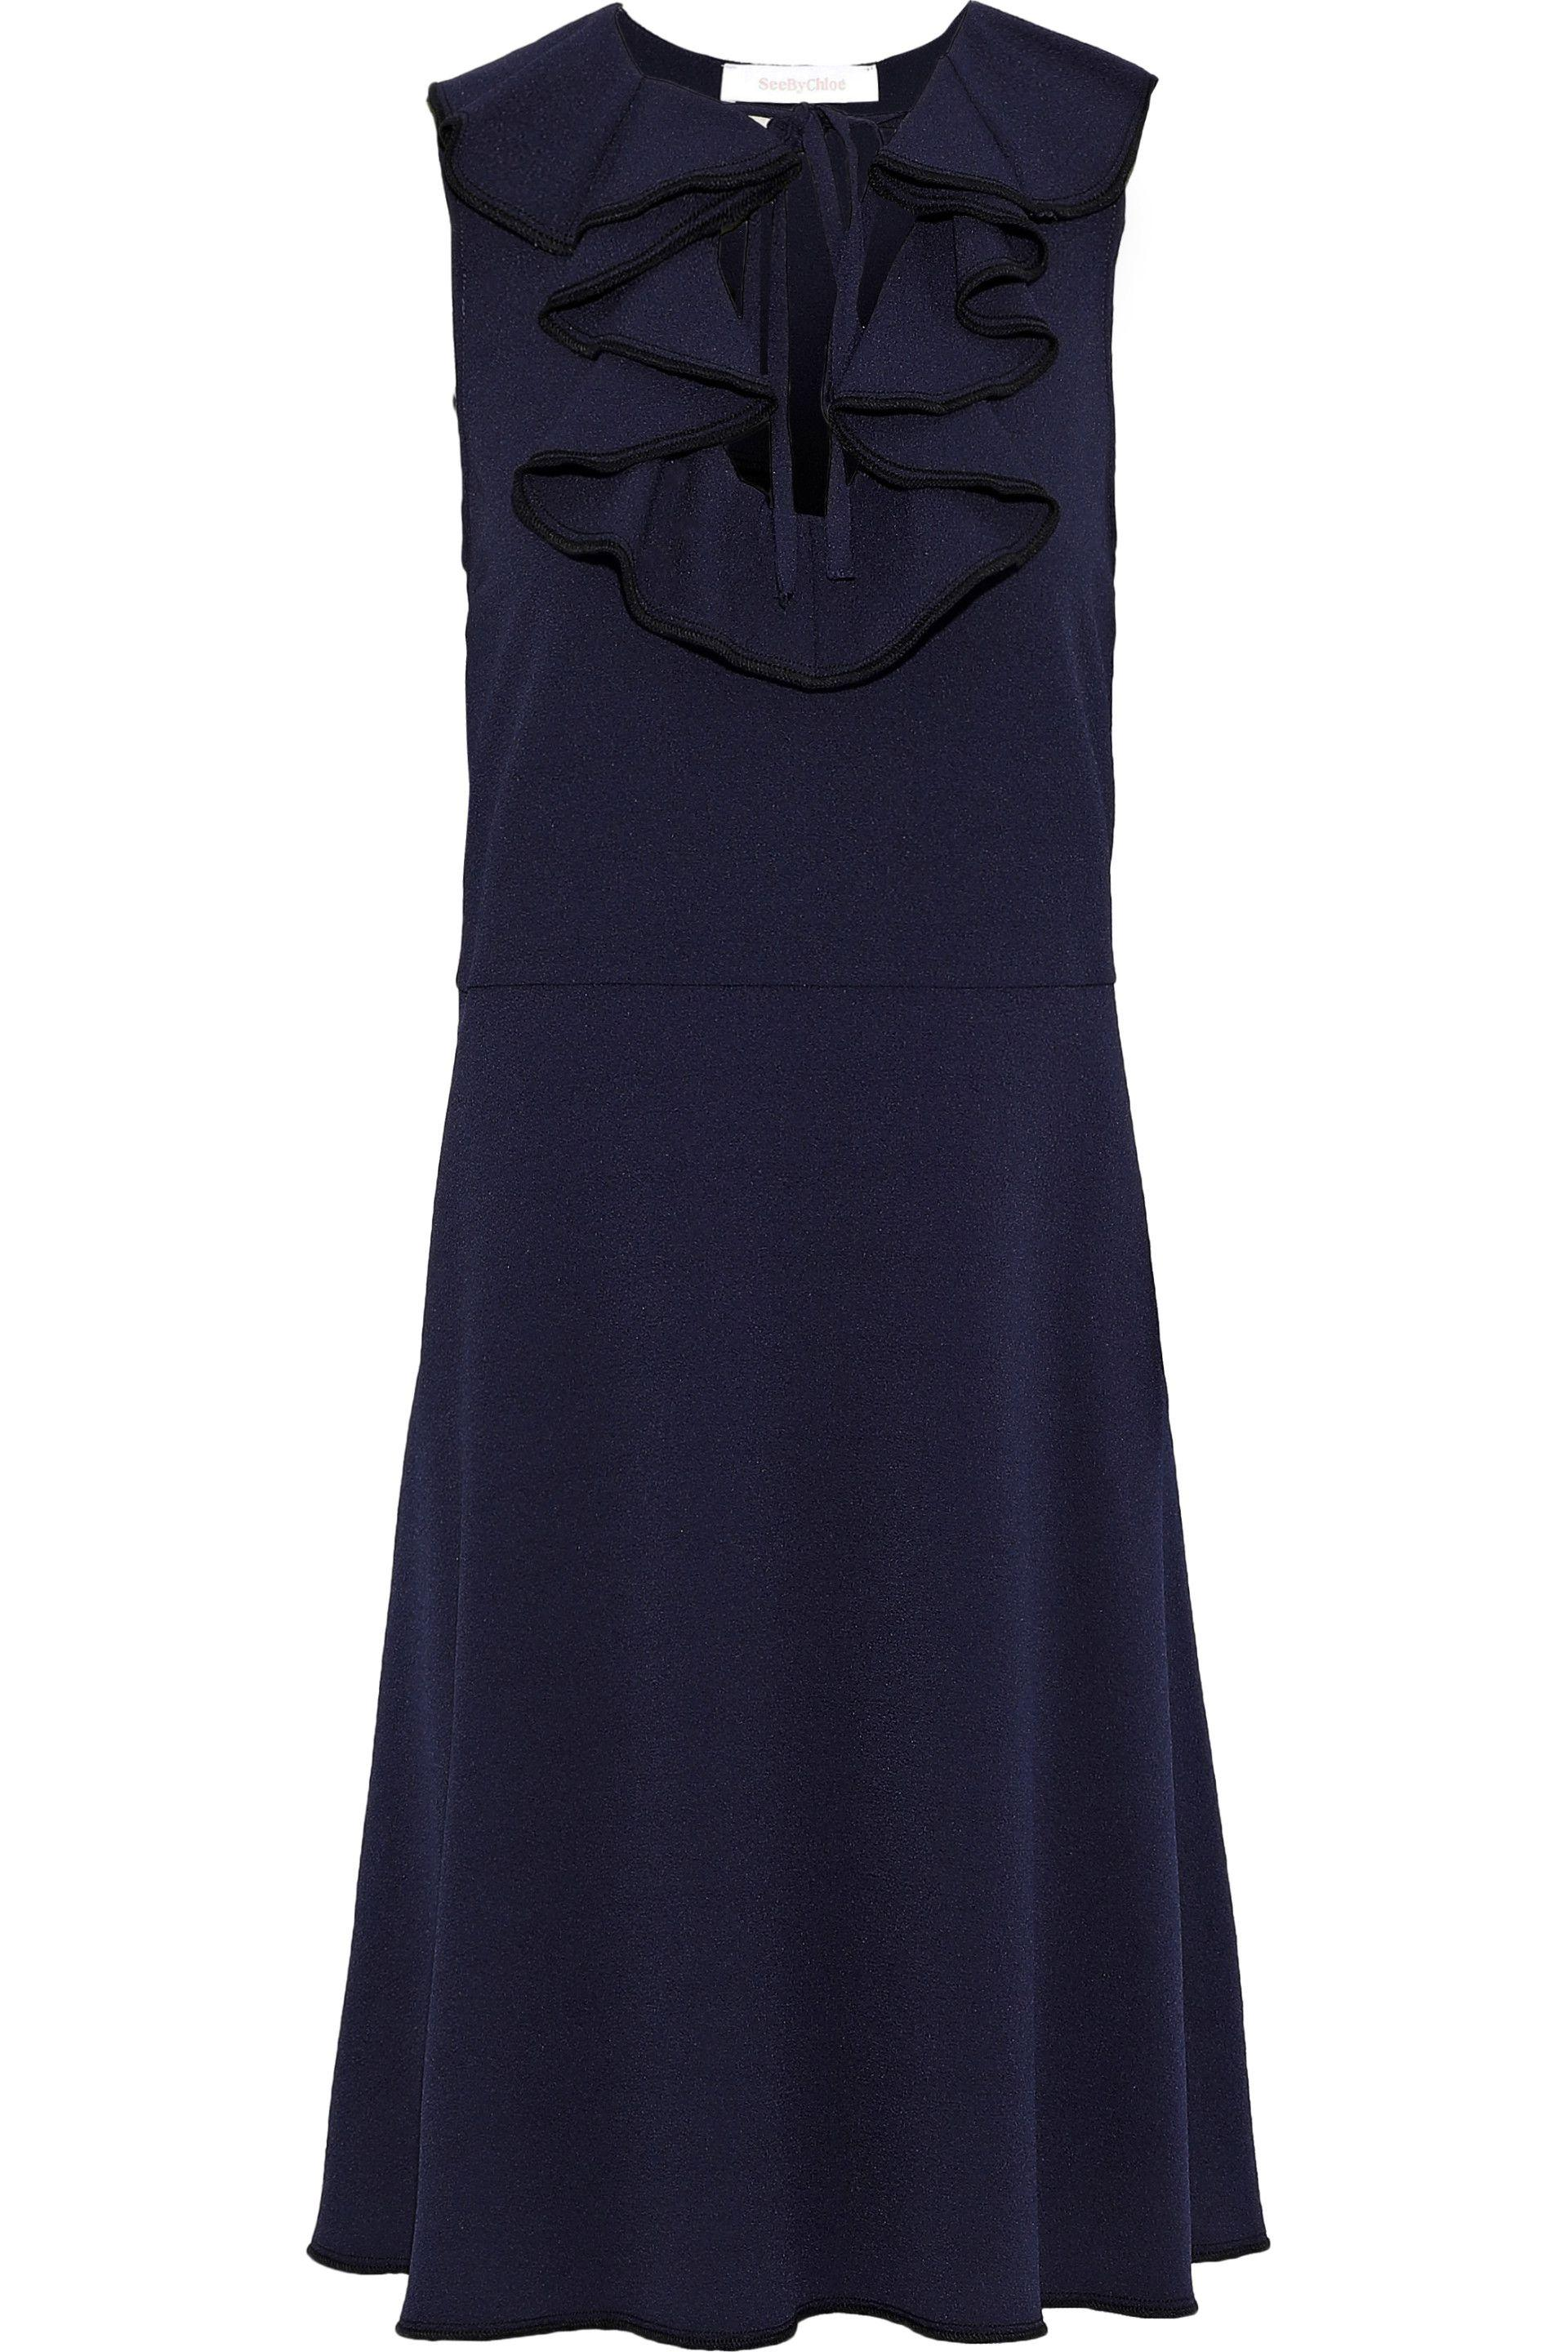 127871ac29 See By Chloé. Women s Blue See By Chloé Woman Ruffle-trimmed Crepe Dress  Navy